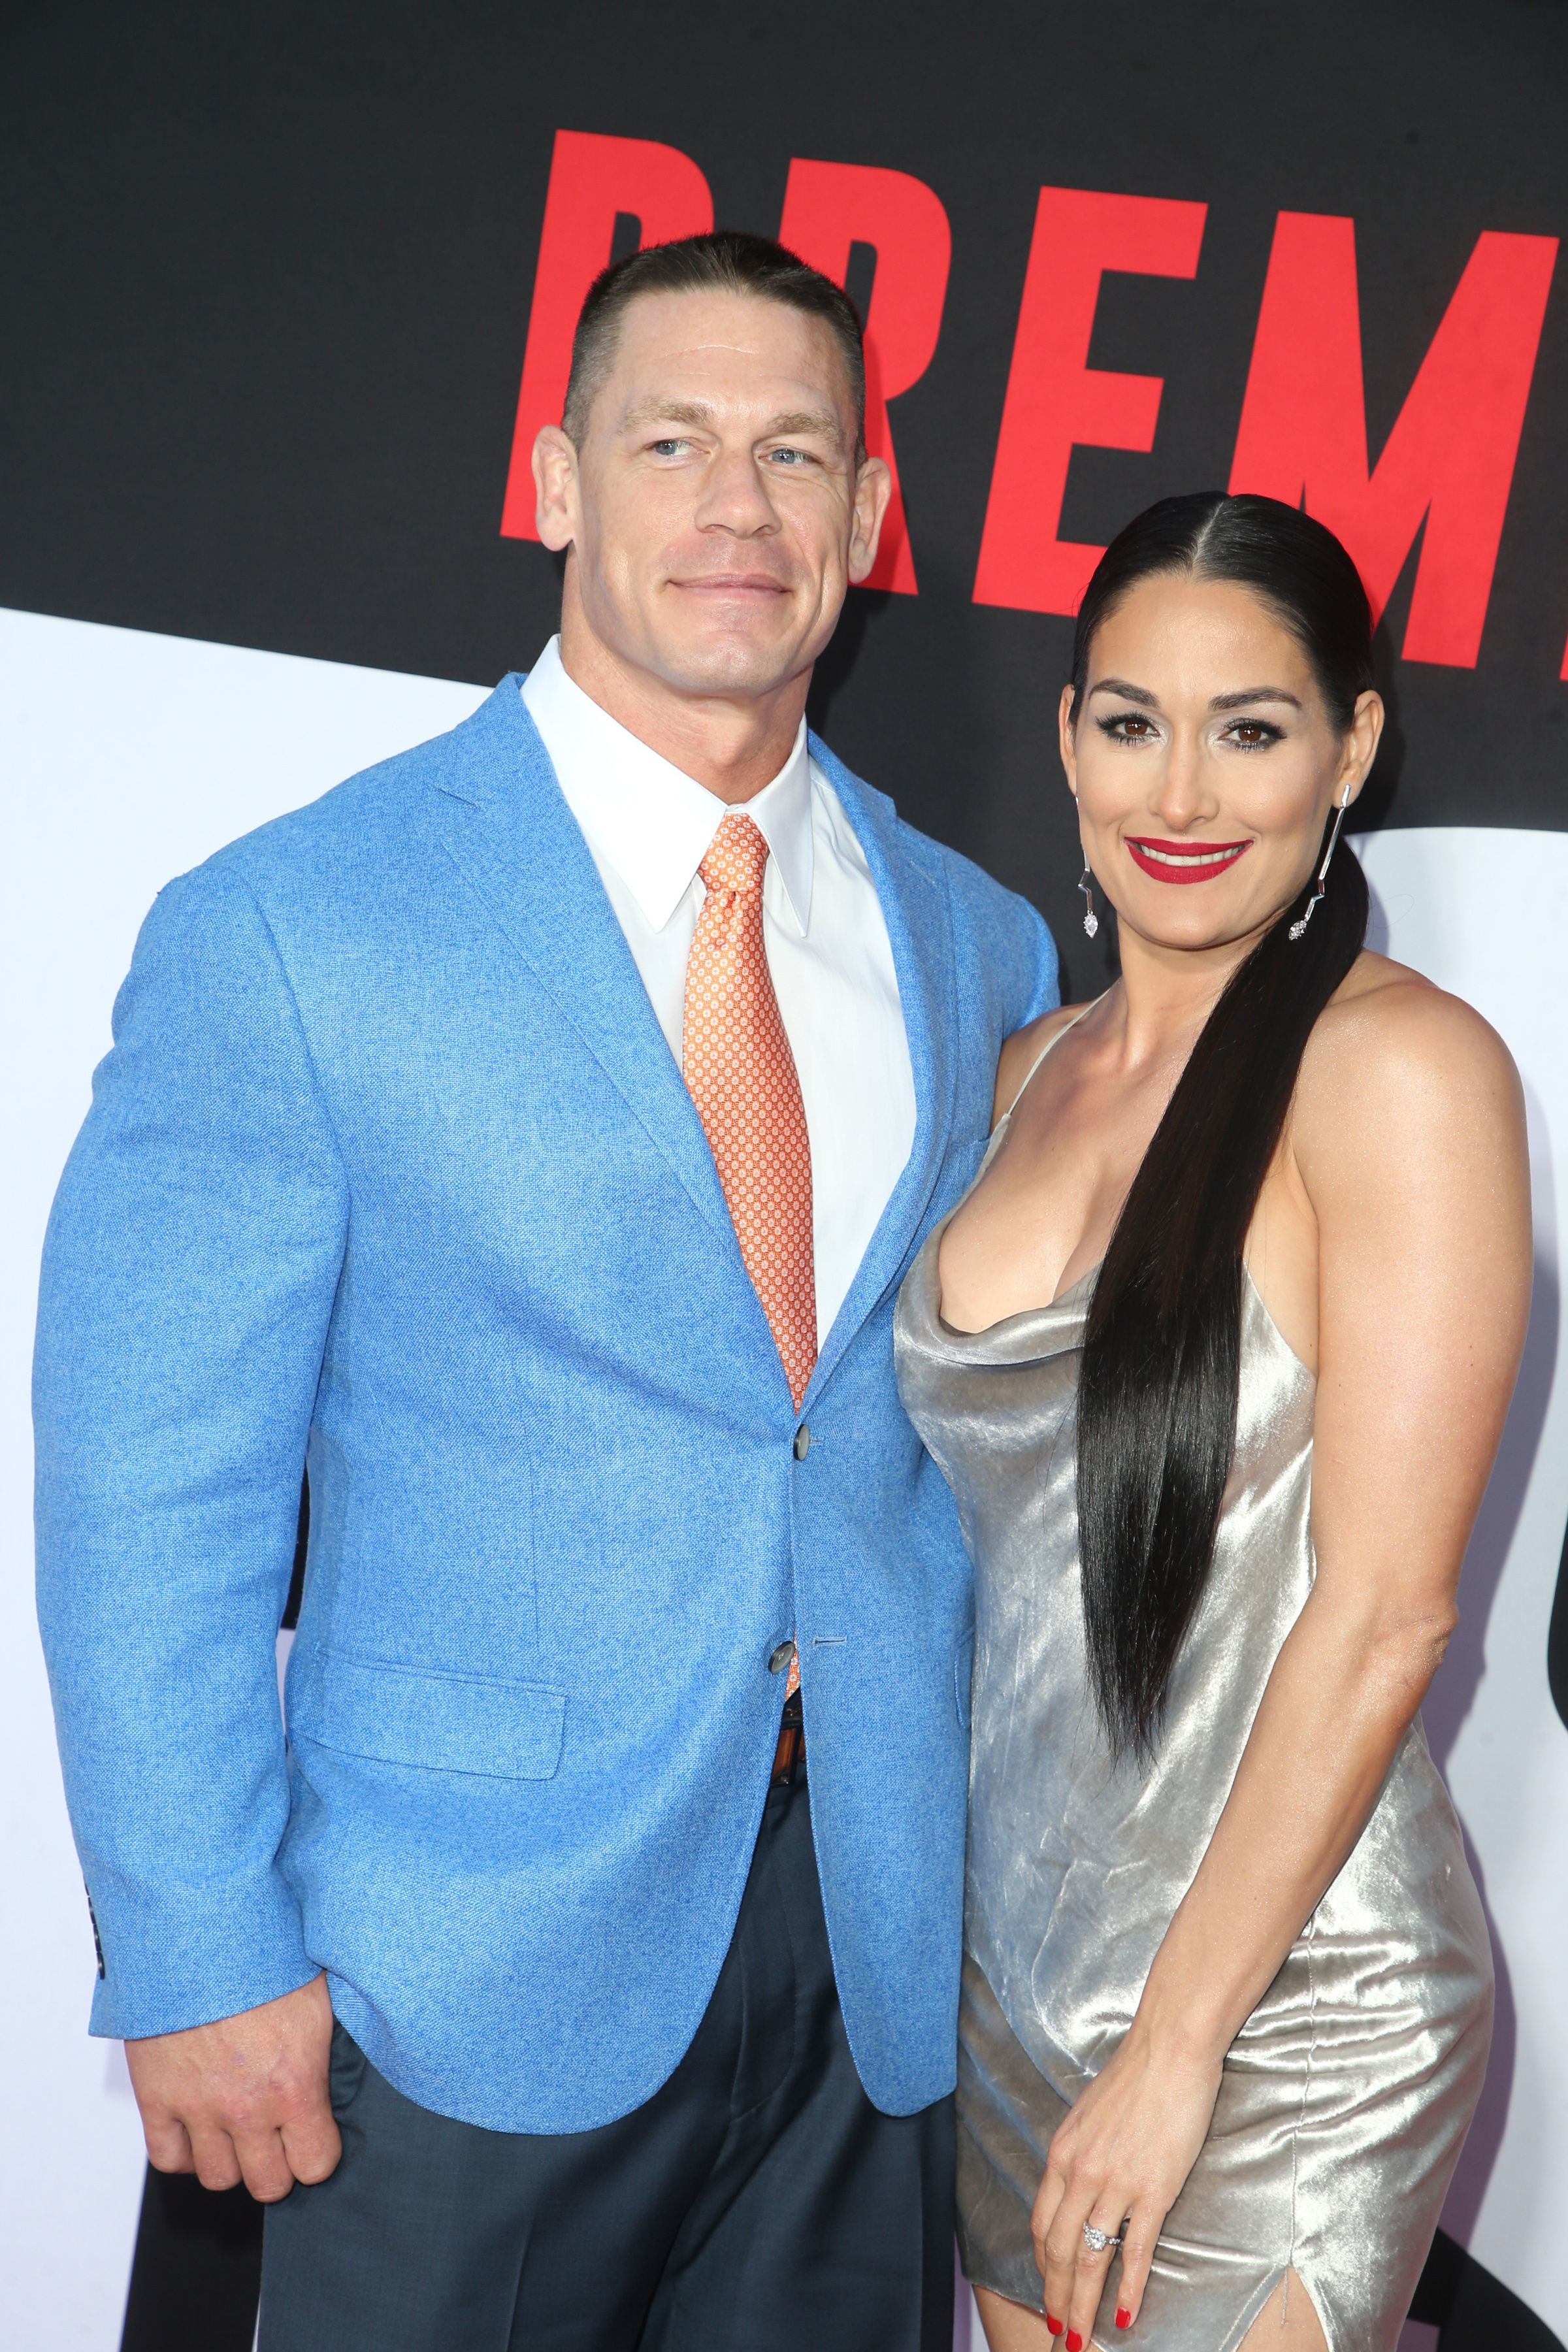 Nikki Bella says she's happy but 'protective' now that John Cena has moved on